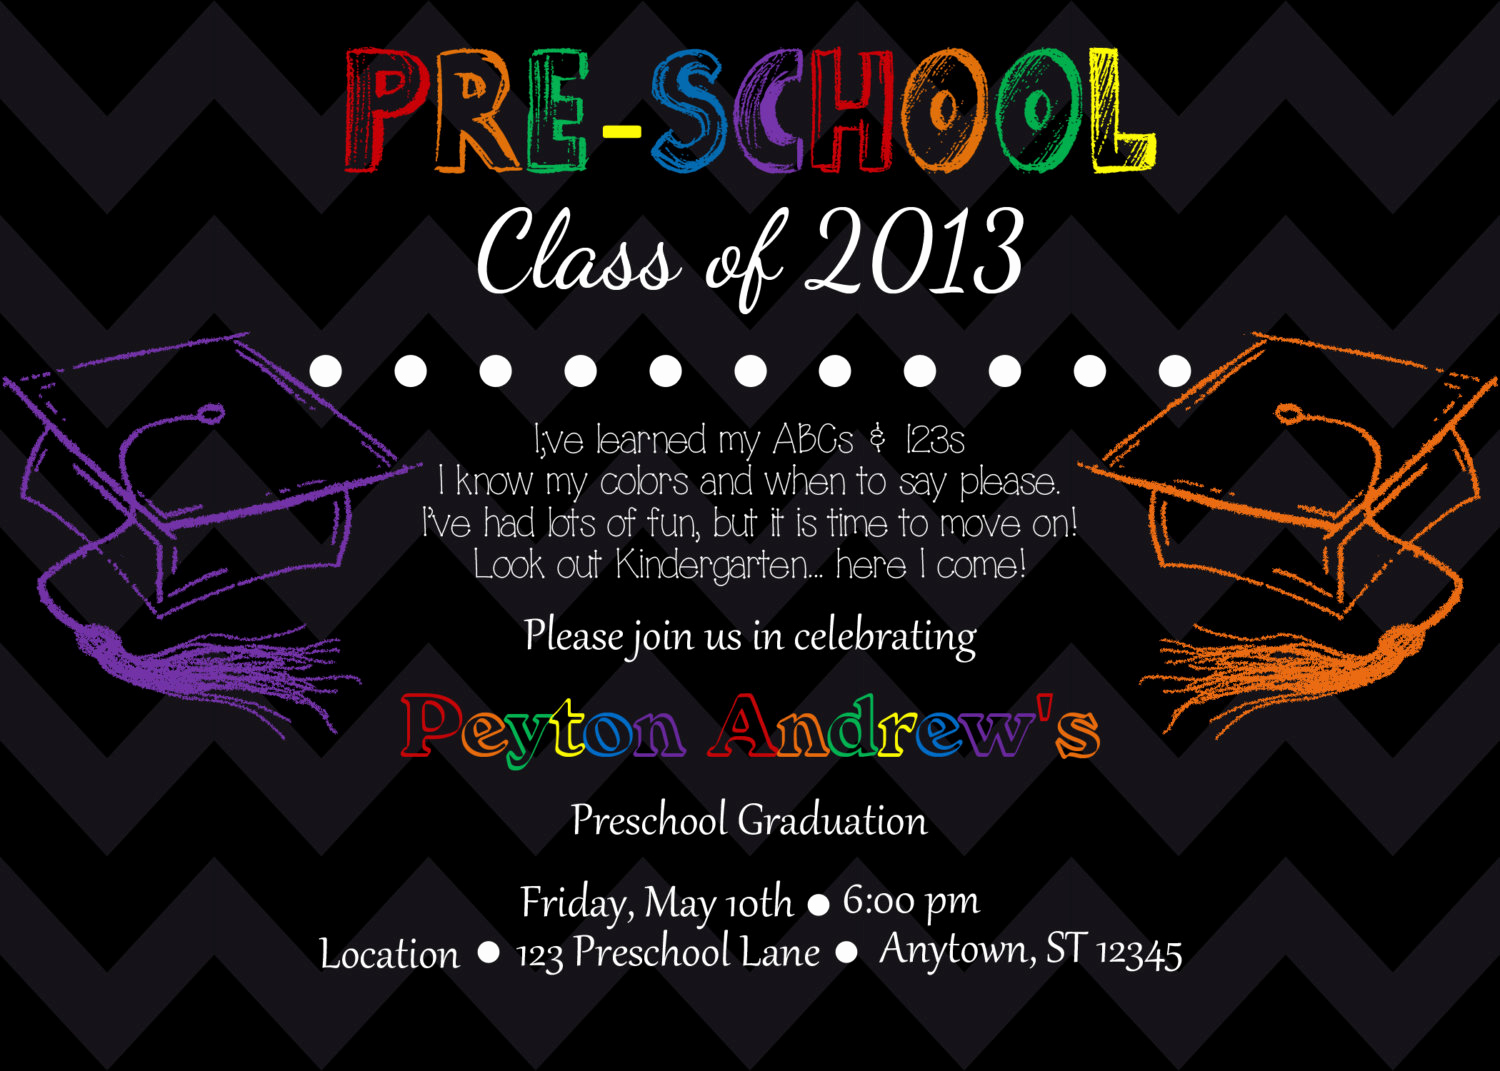 Preschool Graduation Invitation Ideas Unique Preschool Kindergarten Graduation Invitation by